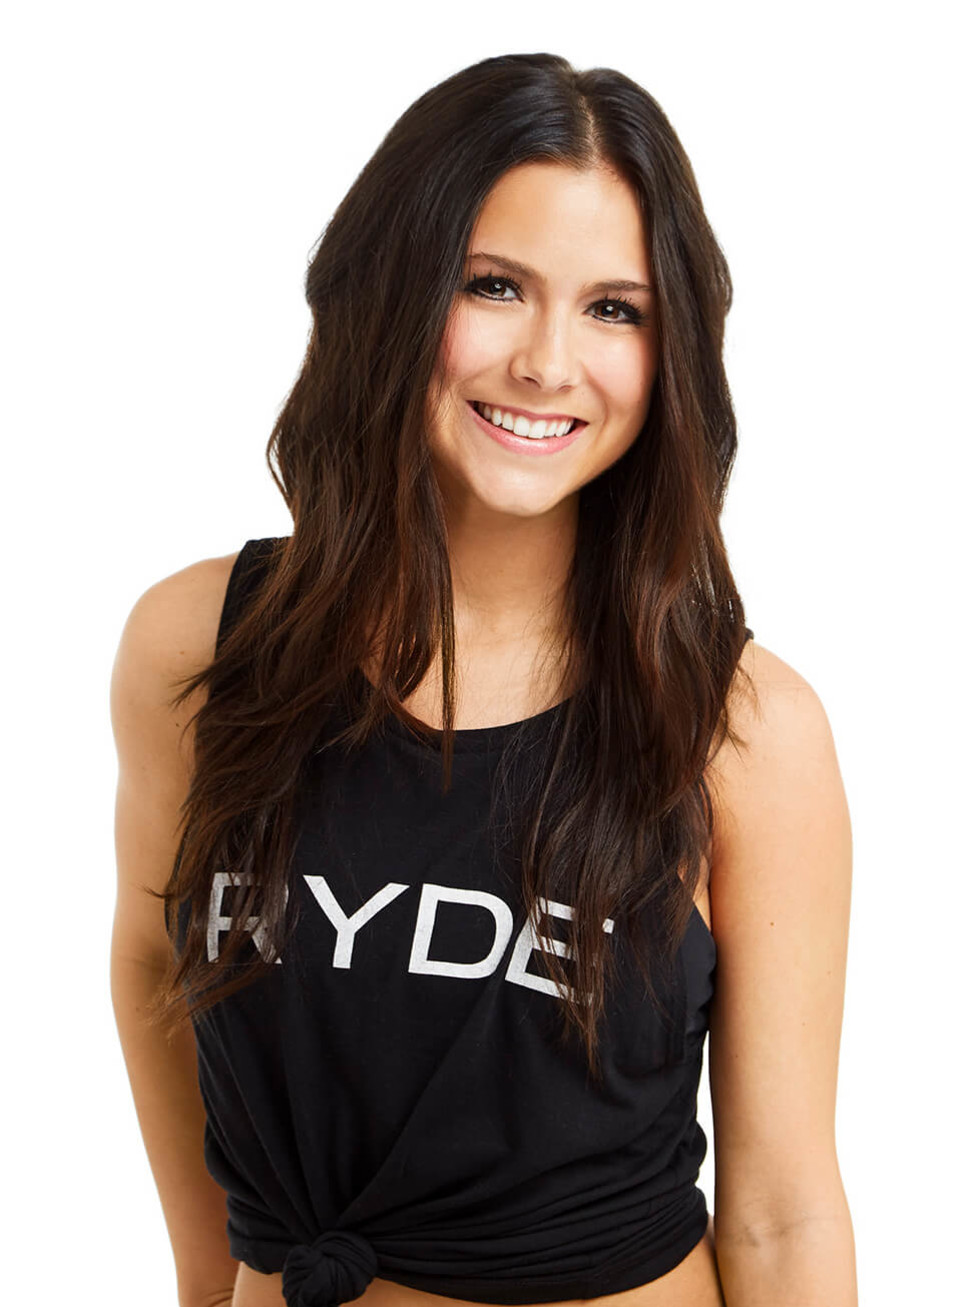 Houston, workout tips with Ryde instructor Morgan Bocca, Feb 2017, Morgan Bocca